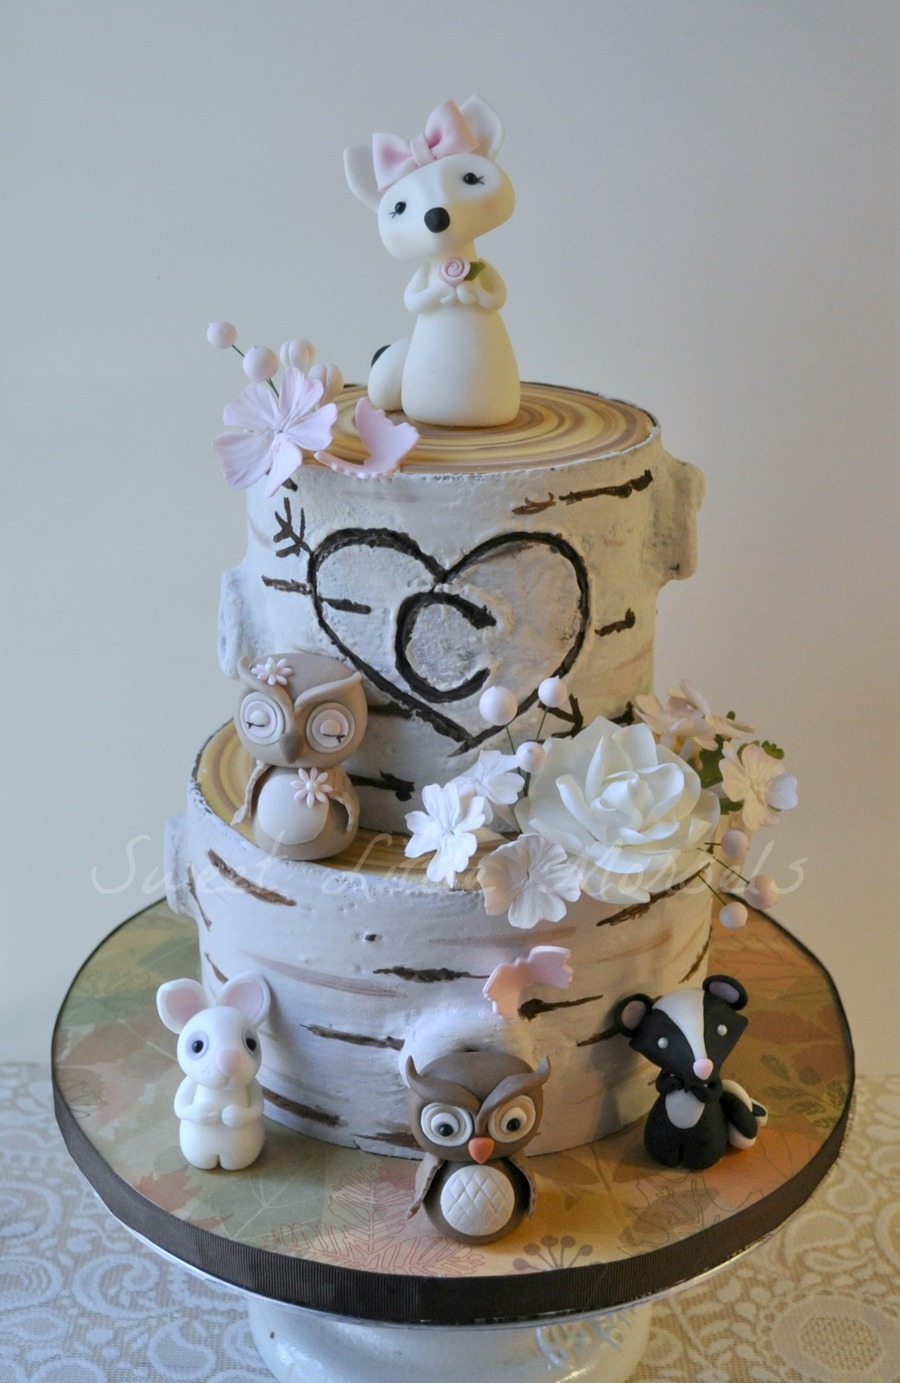 This Cake Was Done For A Friend The Woodland Animals Are Made Out Of Fondant  CakeCentralcom